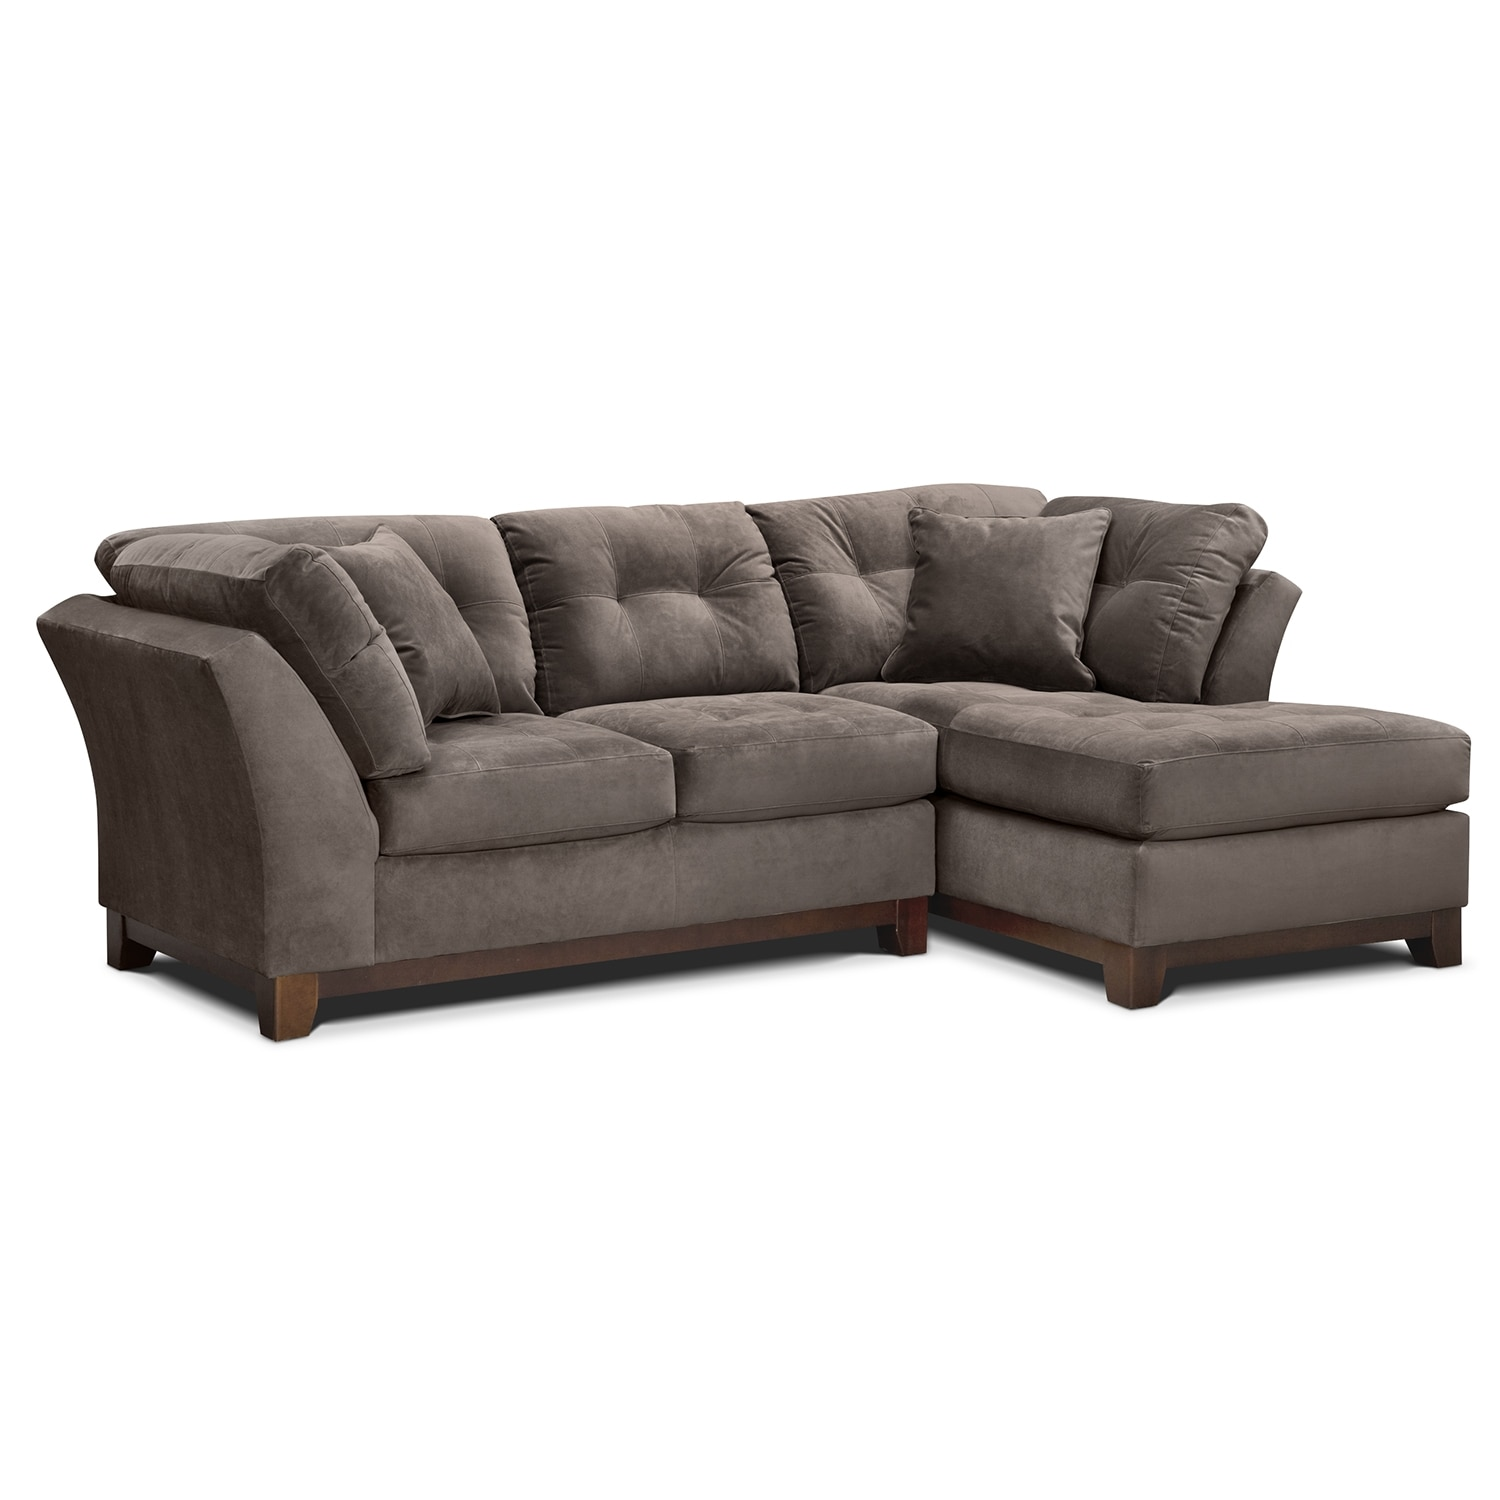 Living Room Furniture - Solace Gray II 2 Pc. Sectional (Alternate Reverse)